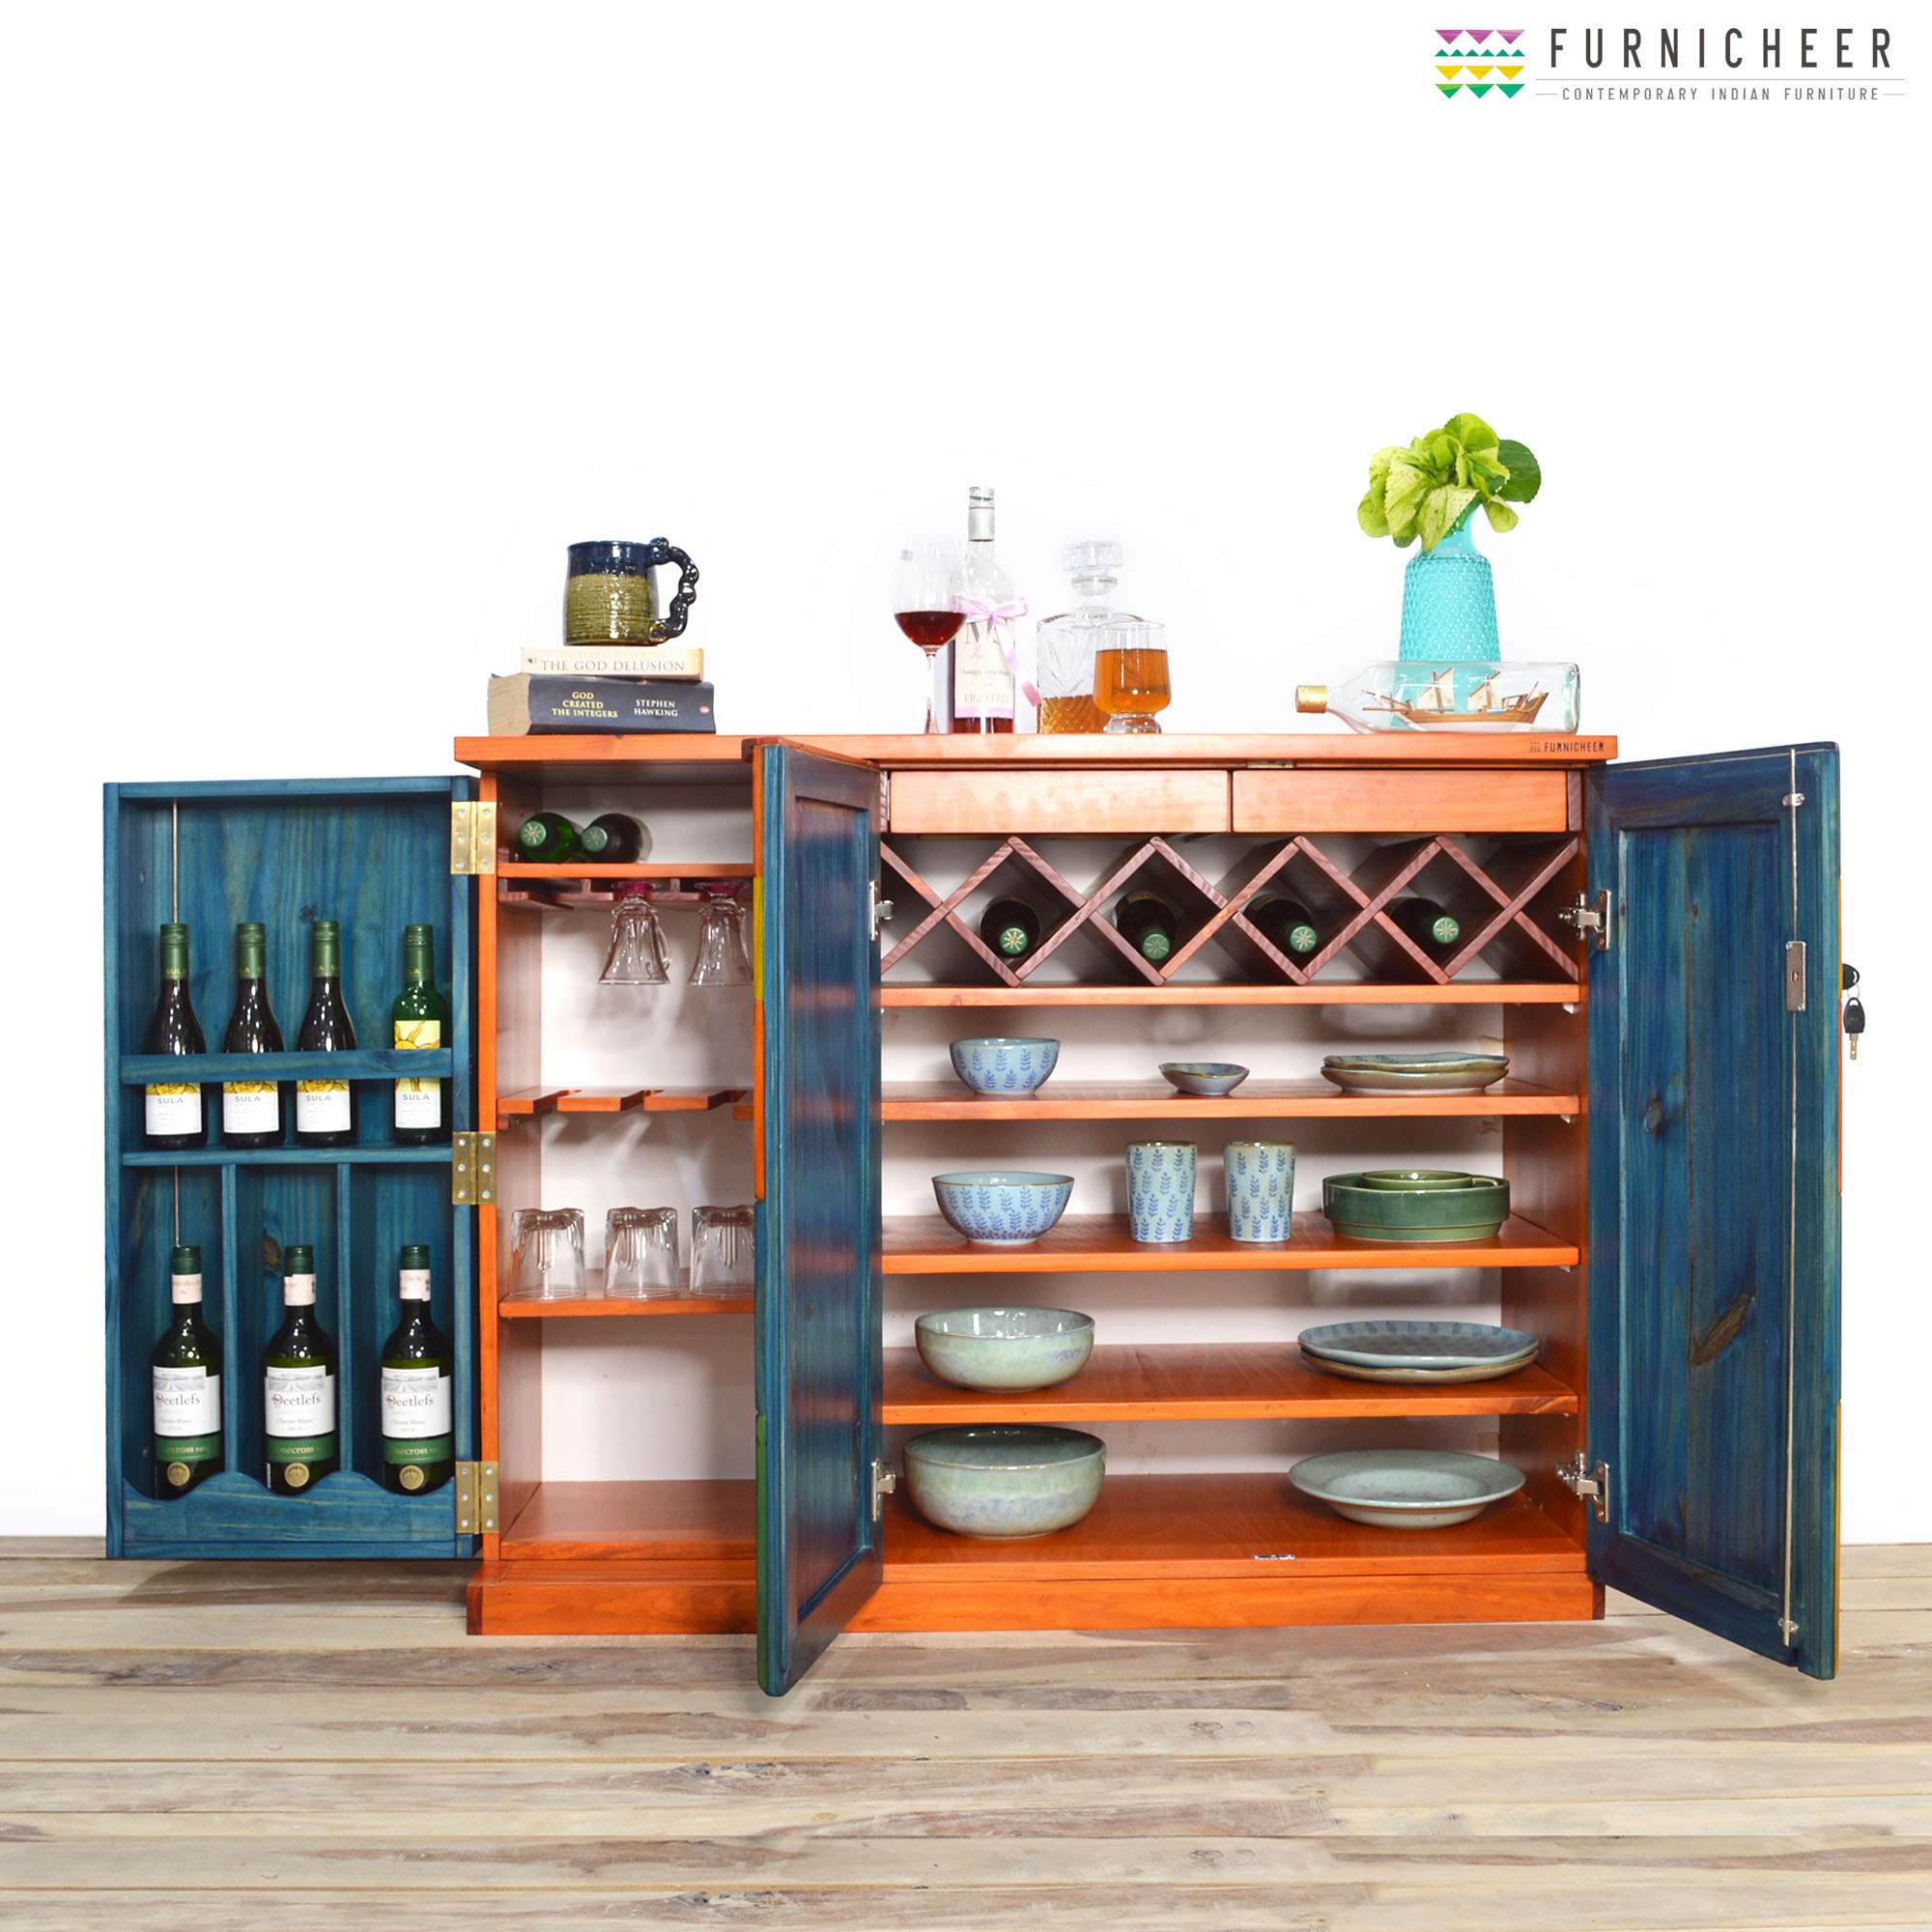 2.BAR & CROCKERY UNIT SKU CUMC4535